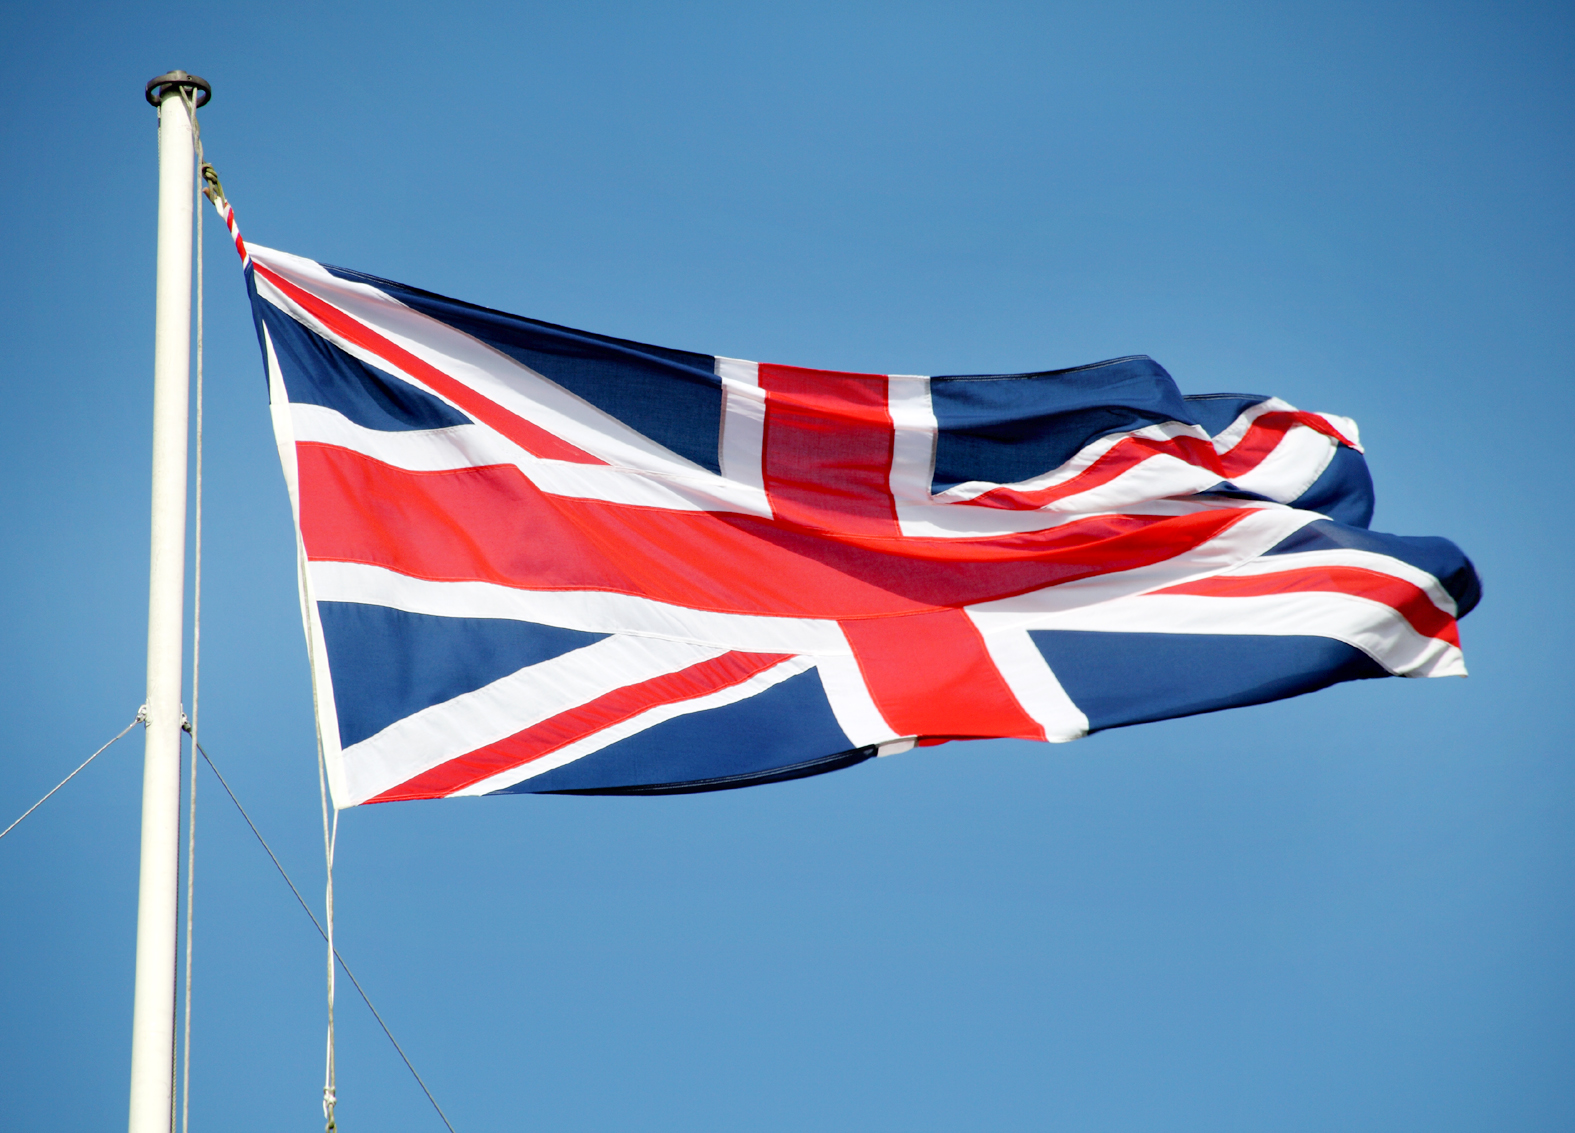 All Bolton schools should fly union flag and sing national anthem, says patriotic councillor